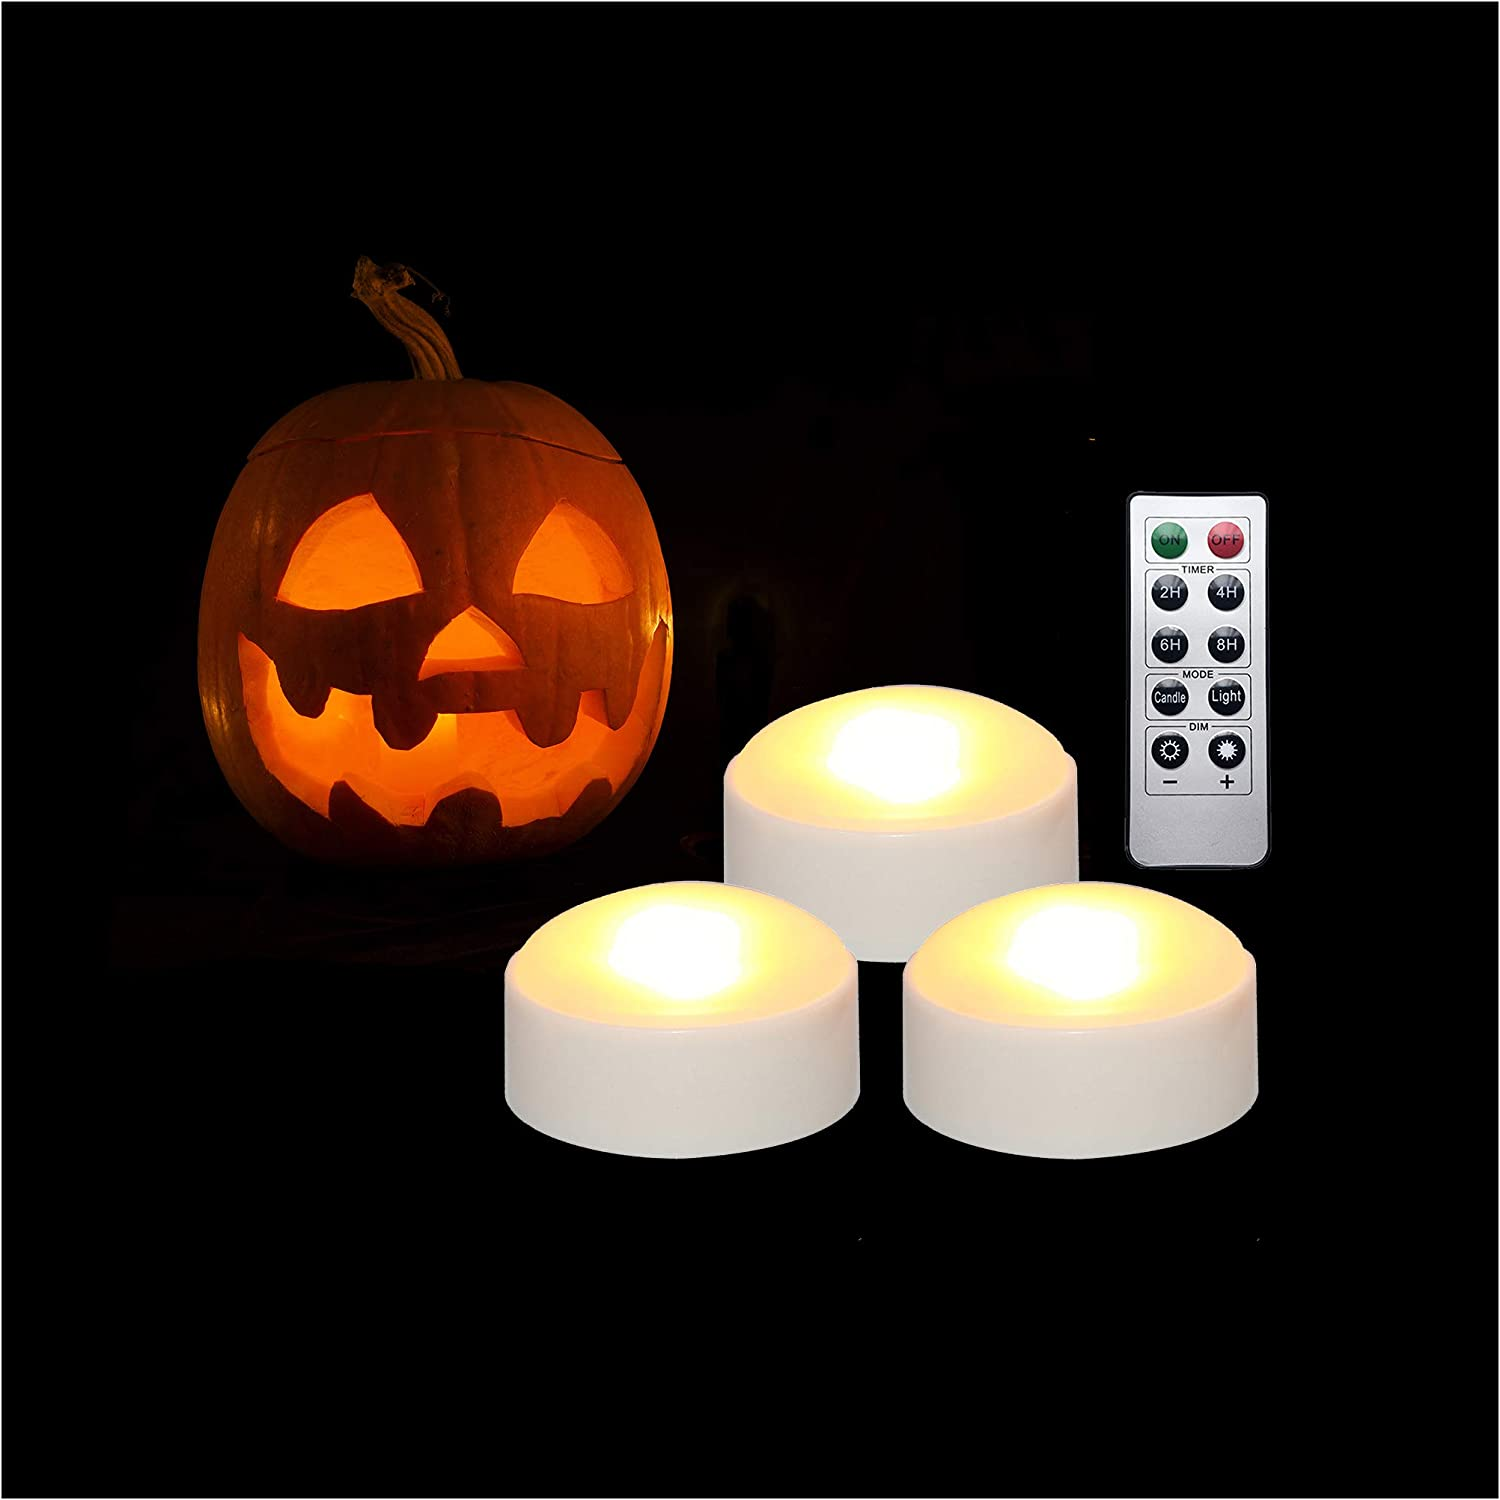 3 PCS Halloween Pumpkin Lights with Remote and Timer Battery Operated LED Decorative Bright Flickering Flameless Candle Set Bulk for Jack-O-Lantern Décor Party Home Christmas Decorations, White Color